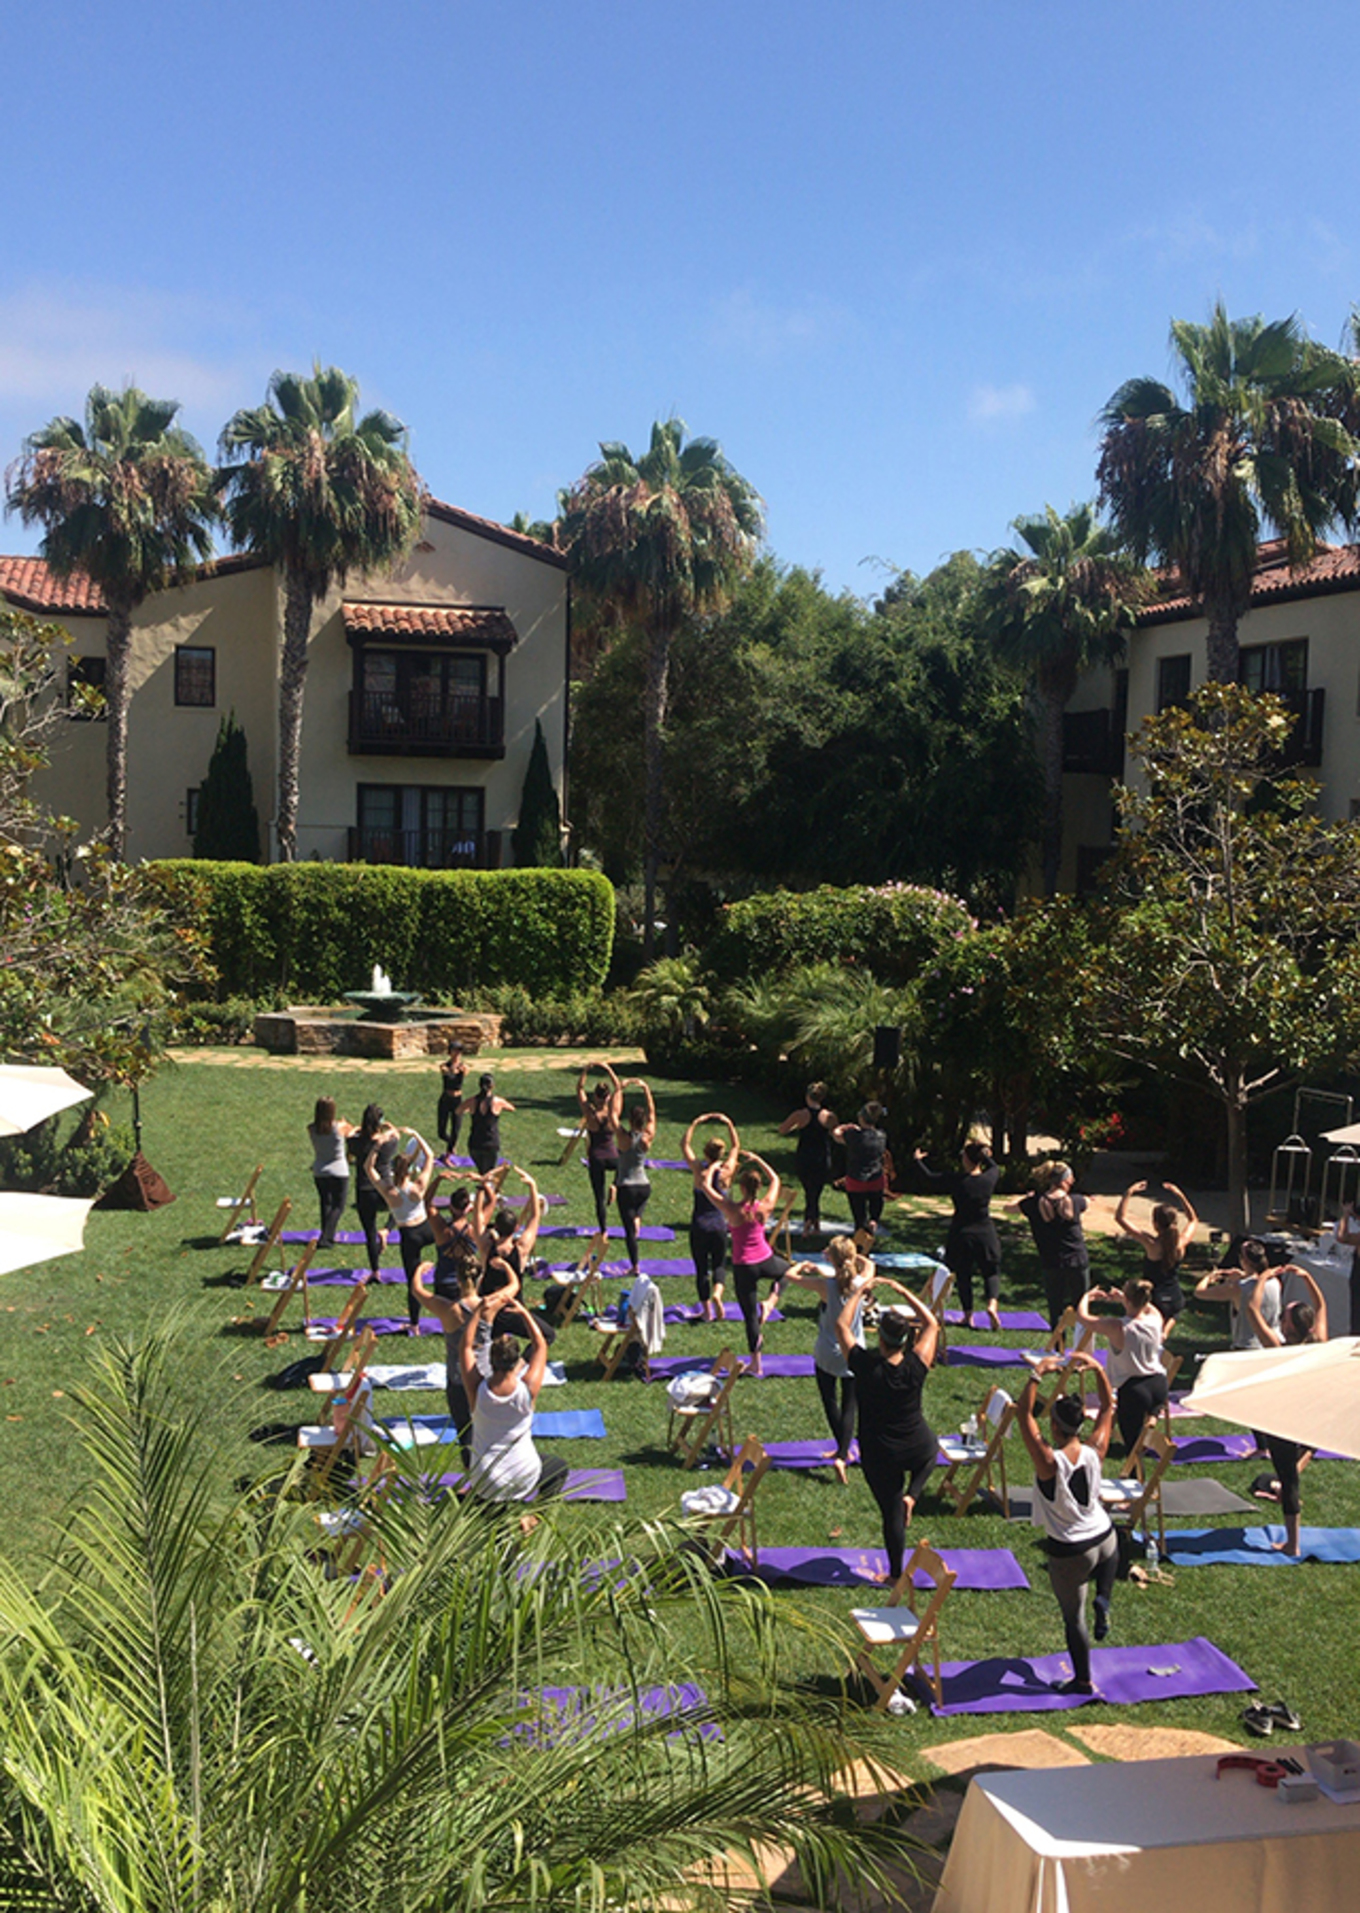 787280d252e Pilates + Prosecco + Pies - Tickets - Estancia La Jolla Hotel & Spa, La  Jolla, CA - November 17, 2019